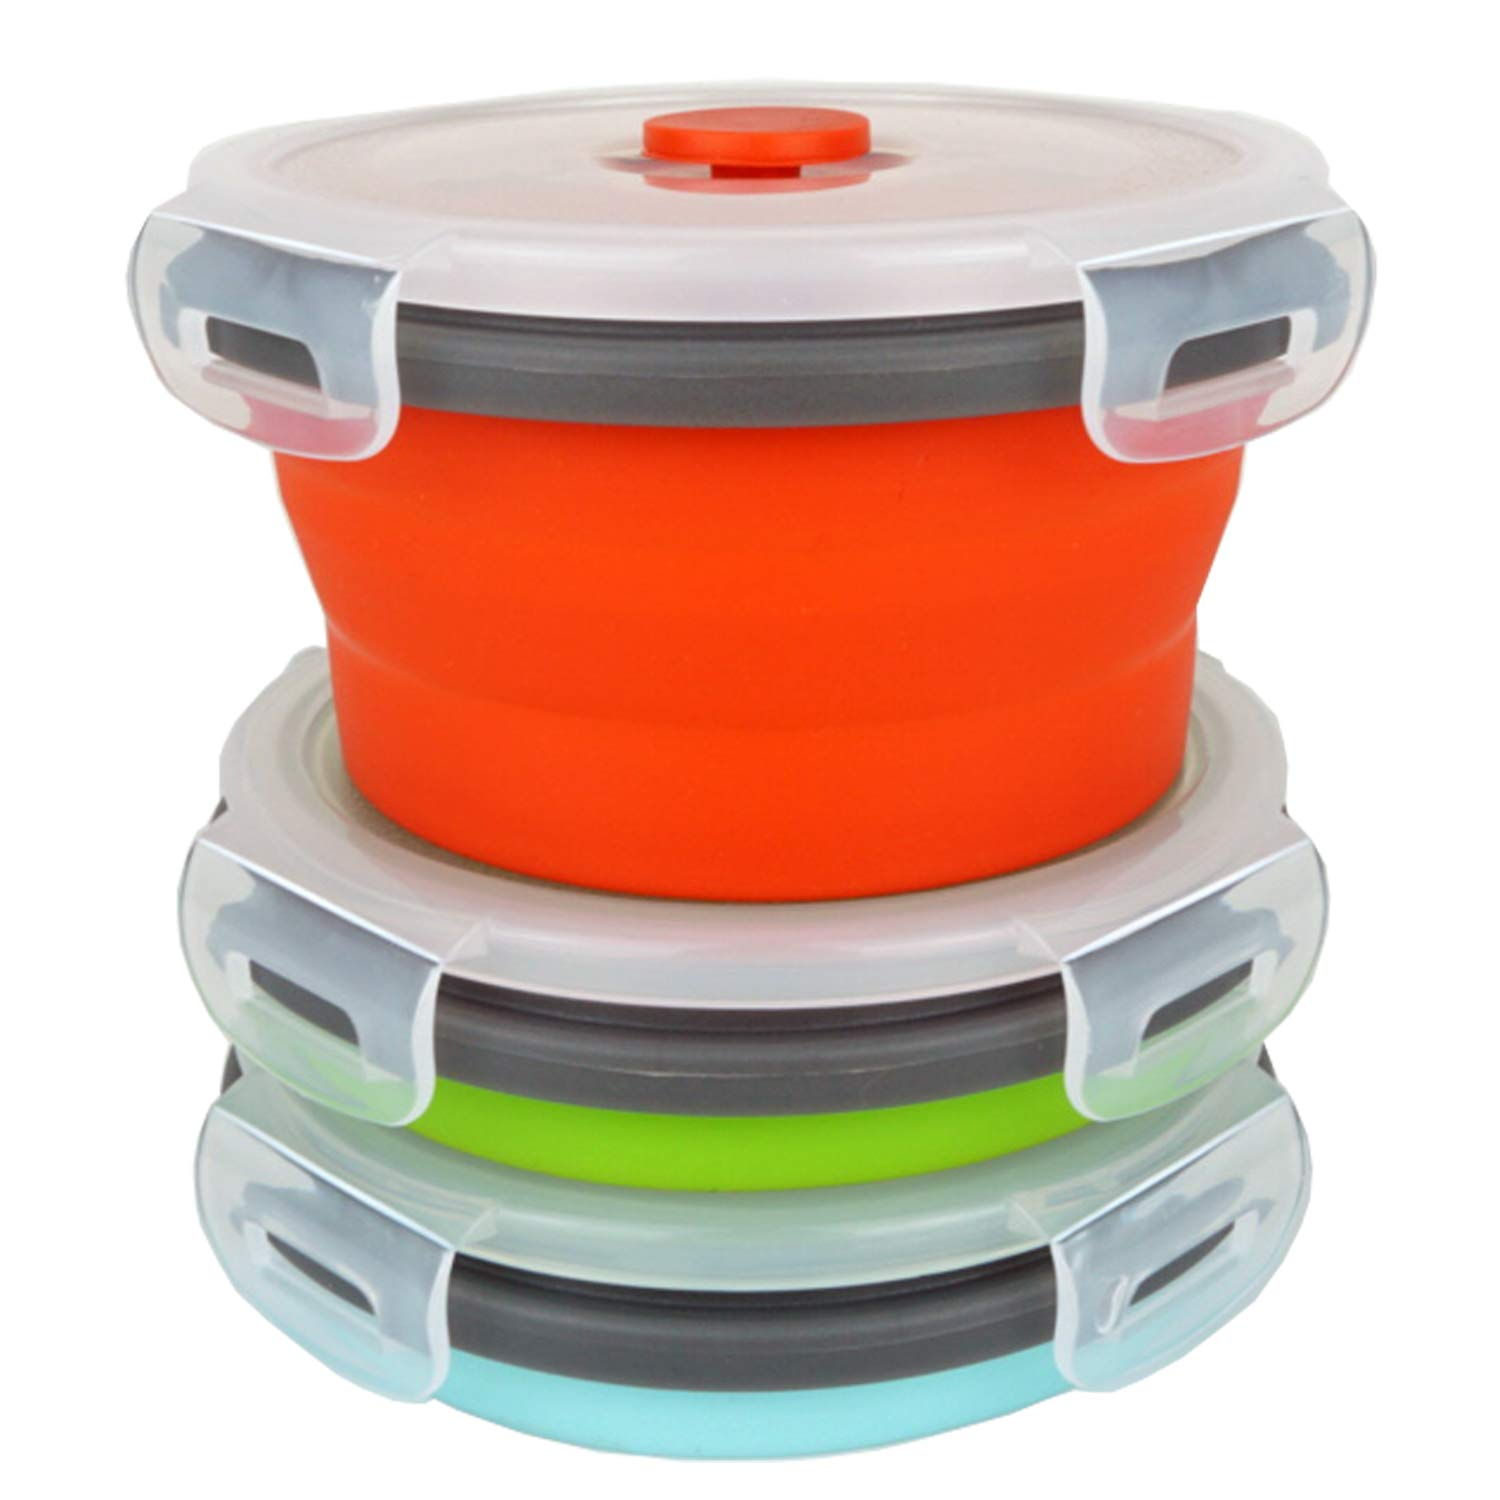 ECOmorning 3Piece Round Collapsible Lunch Container Silicone Food Storage Containers Collapsible Camping Bowl with Airtight Silicone Lids, Microwave, Freezer Safe, 350ML